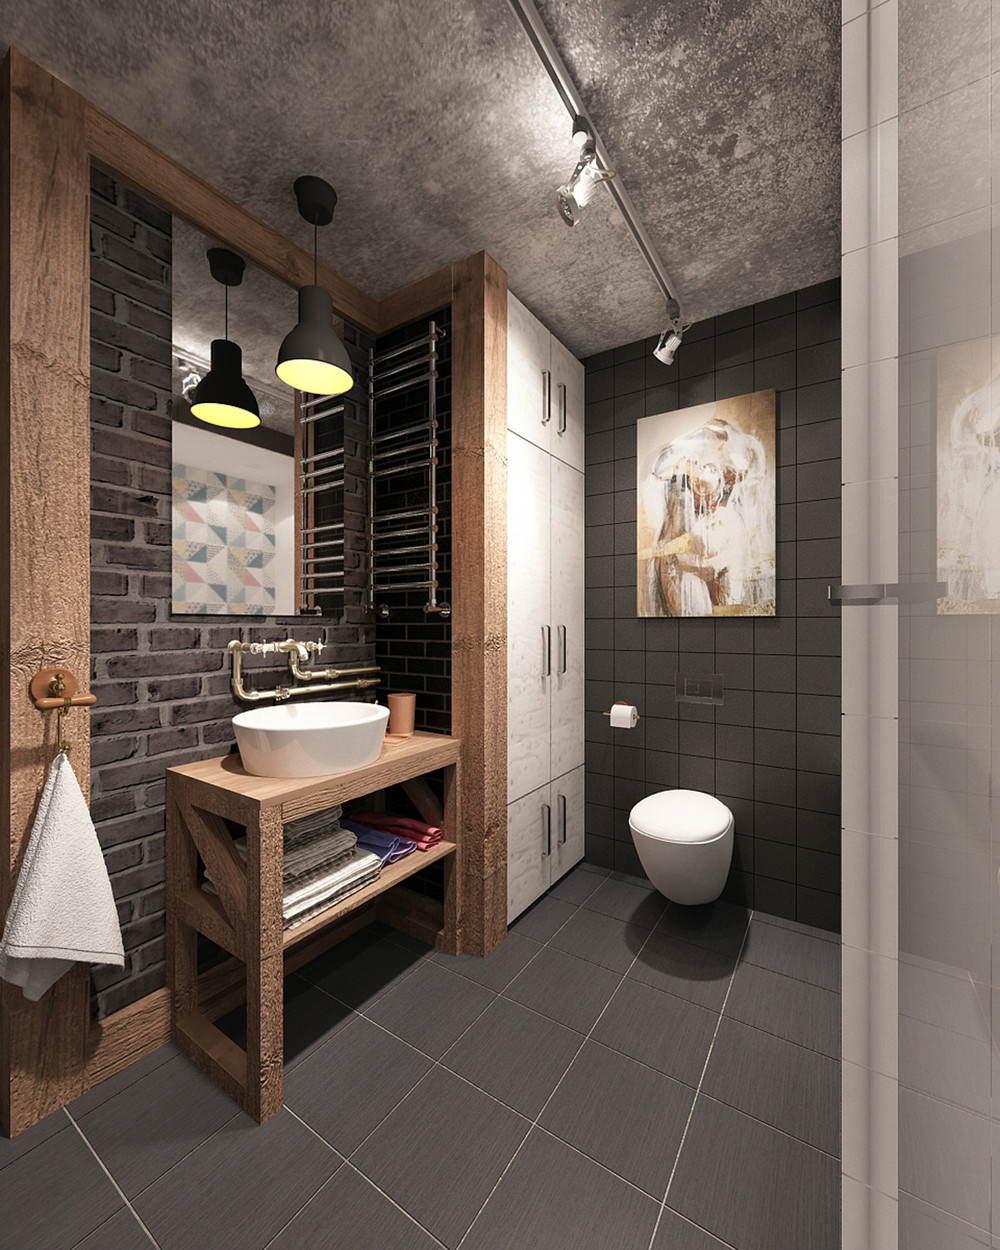 30 awesome industrial bathroom design ideas. Black Bedroom Furniture Sets. Home Design Ideas